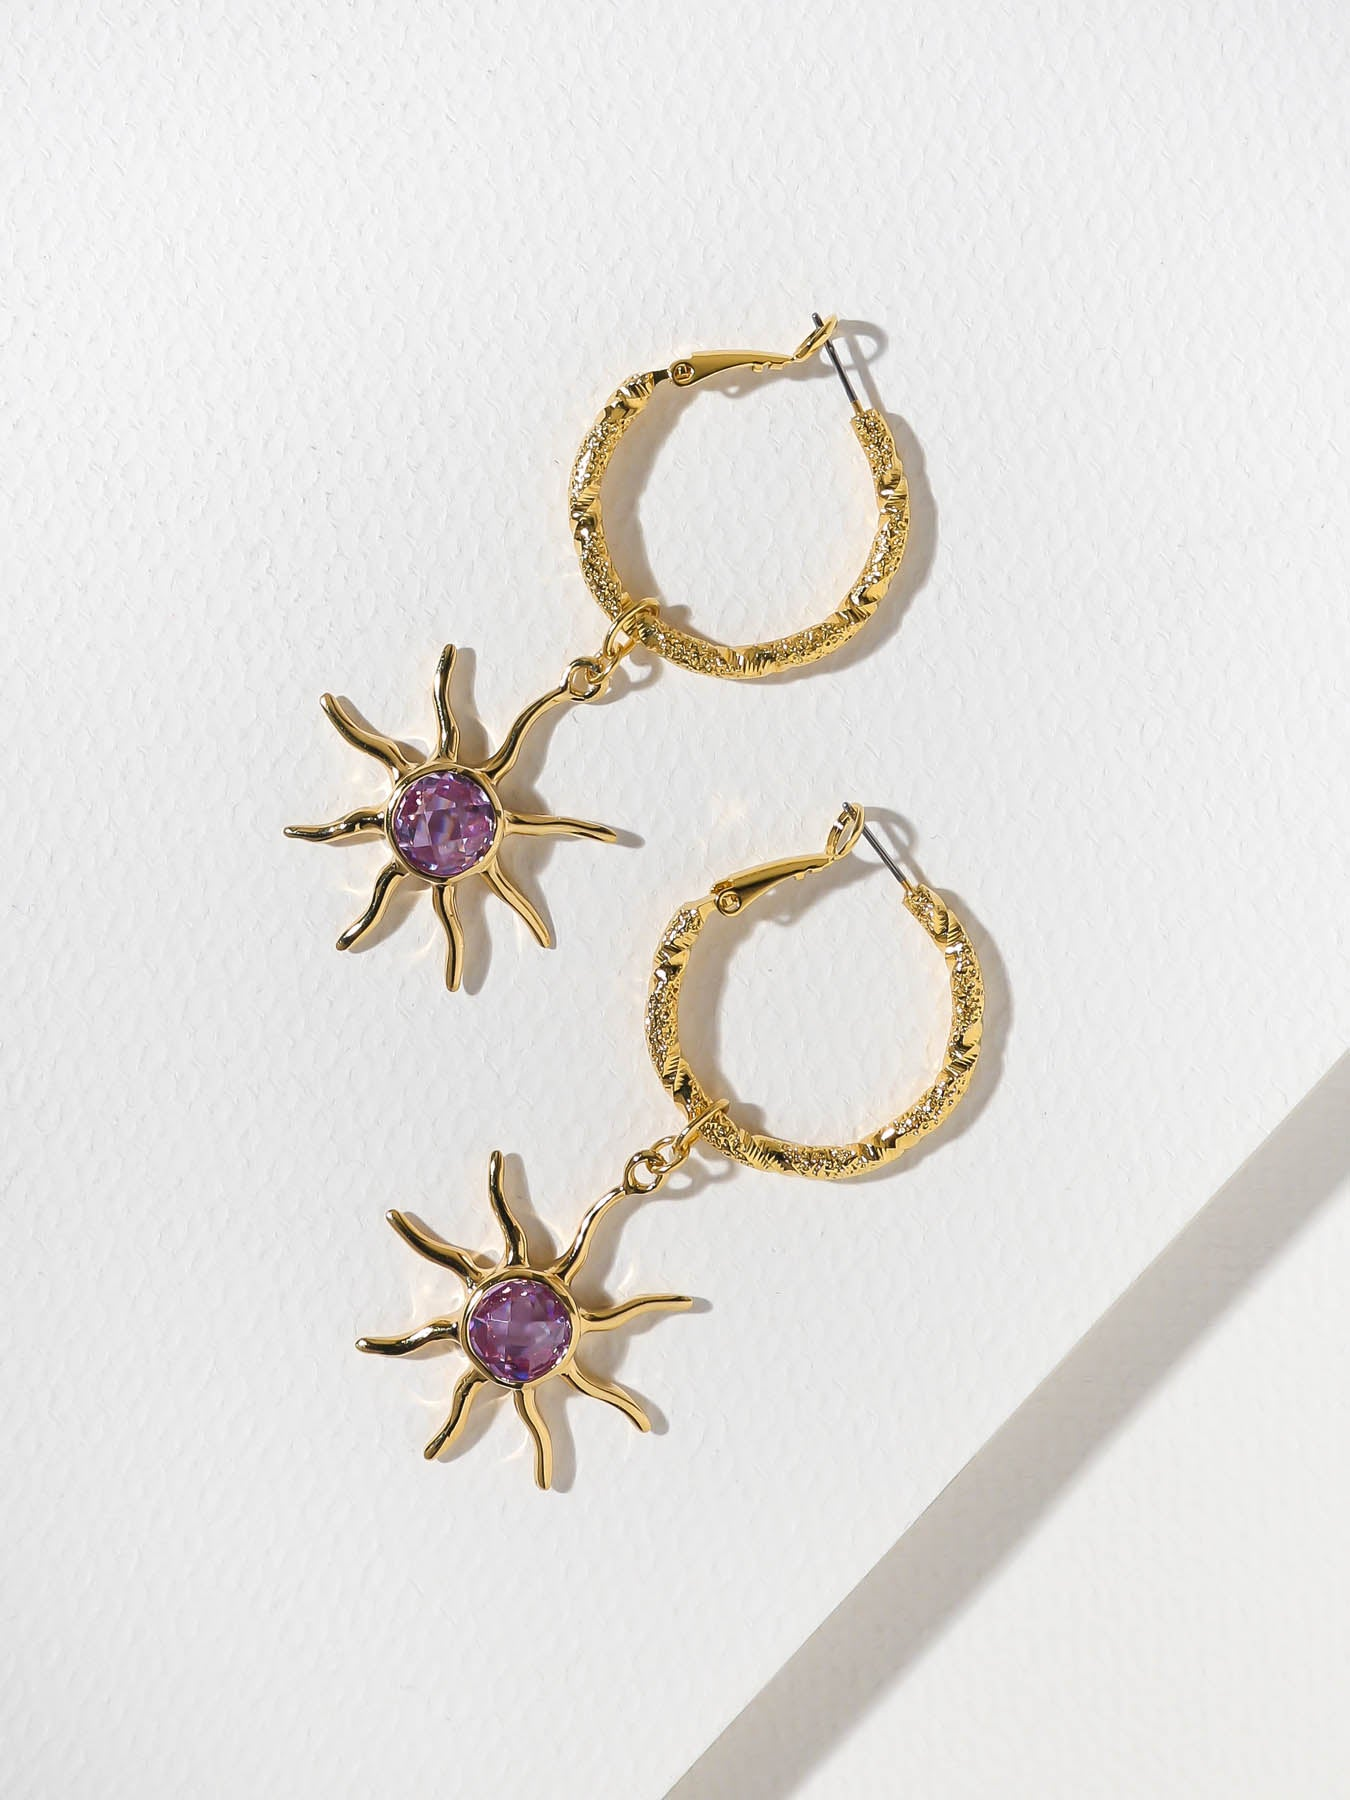 Earrings The Pastel Sun Hoop Earrings Vanessa Mooney